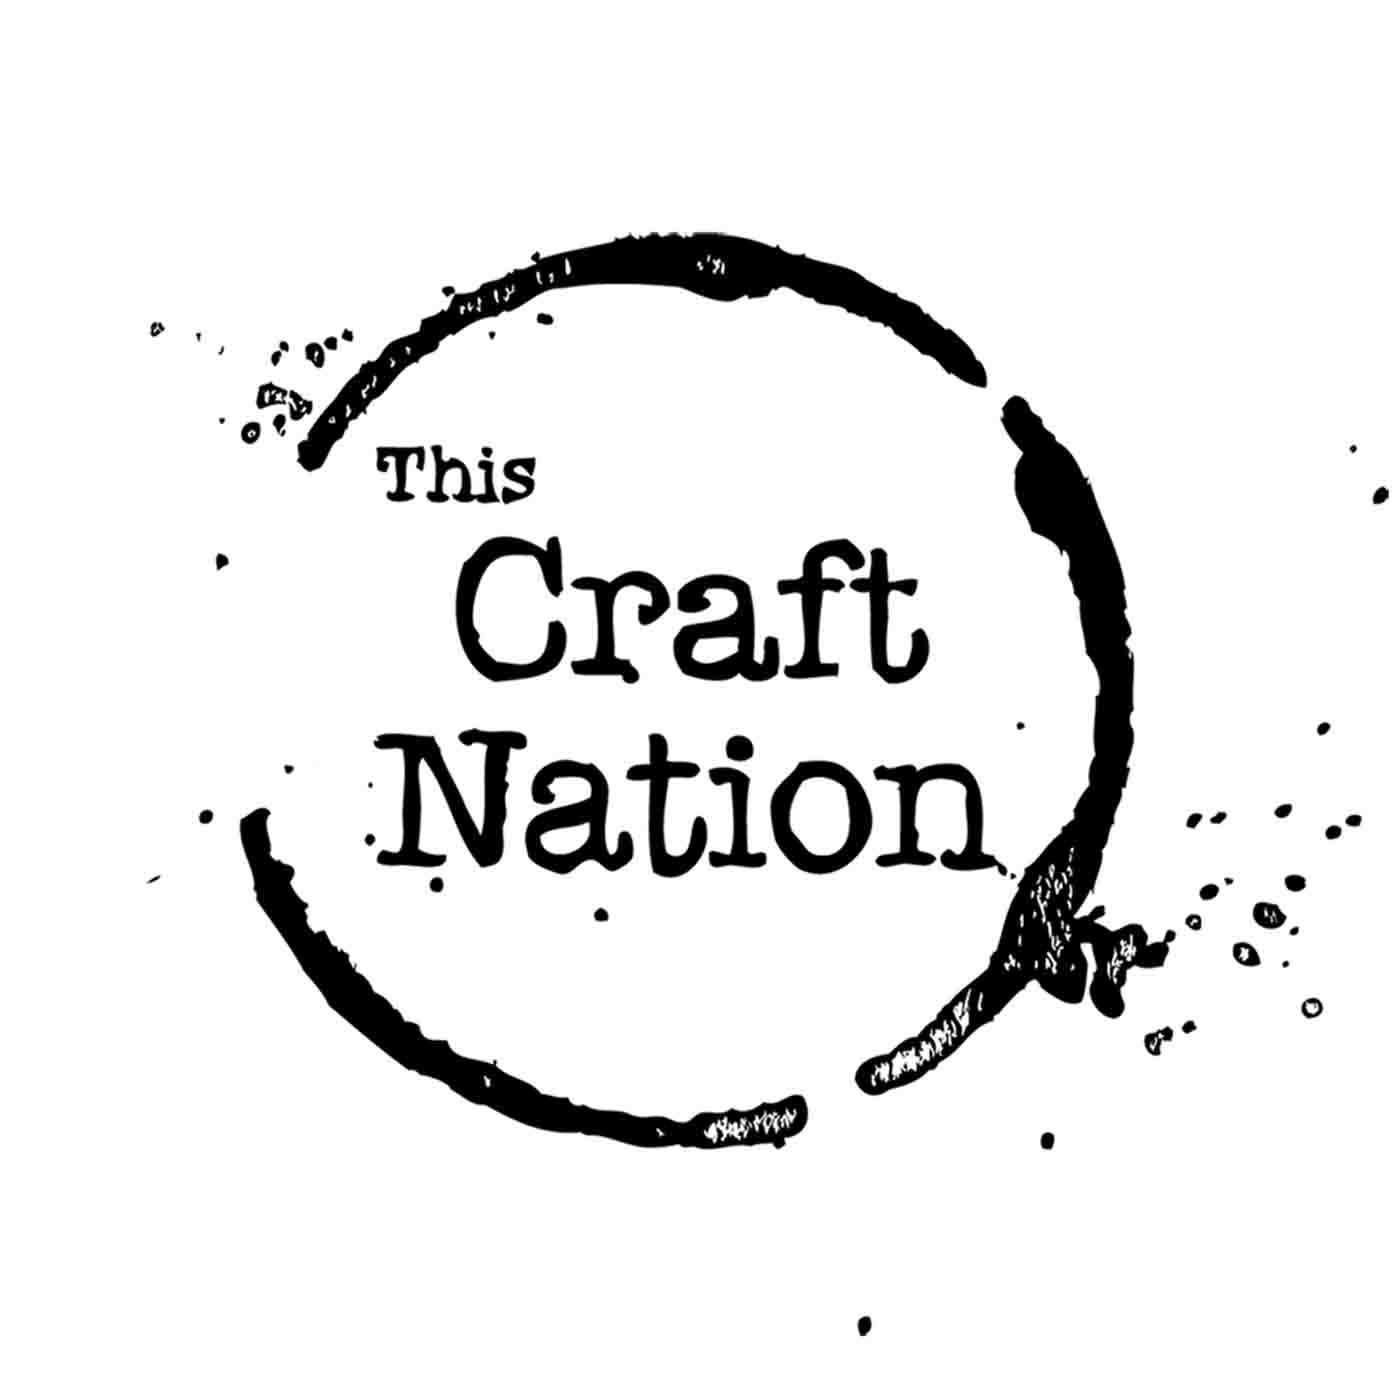 This Craft Nation show art